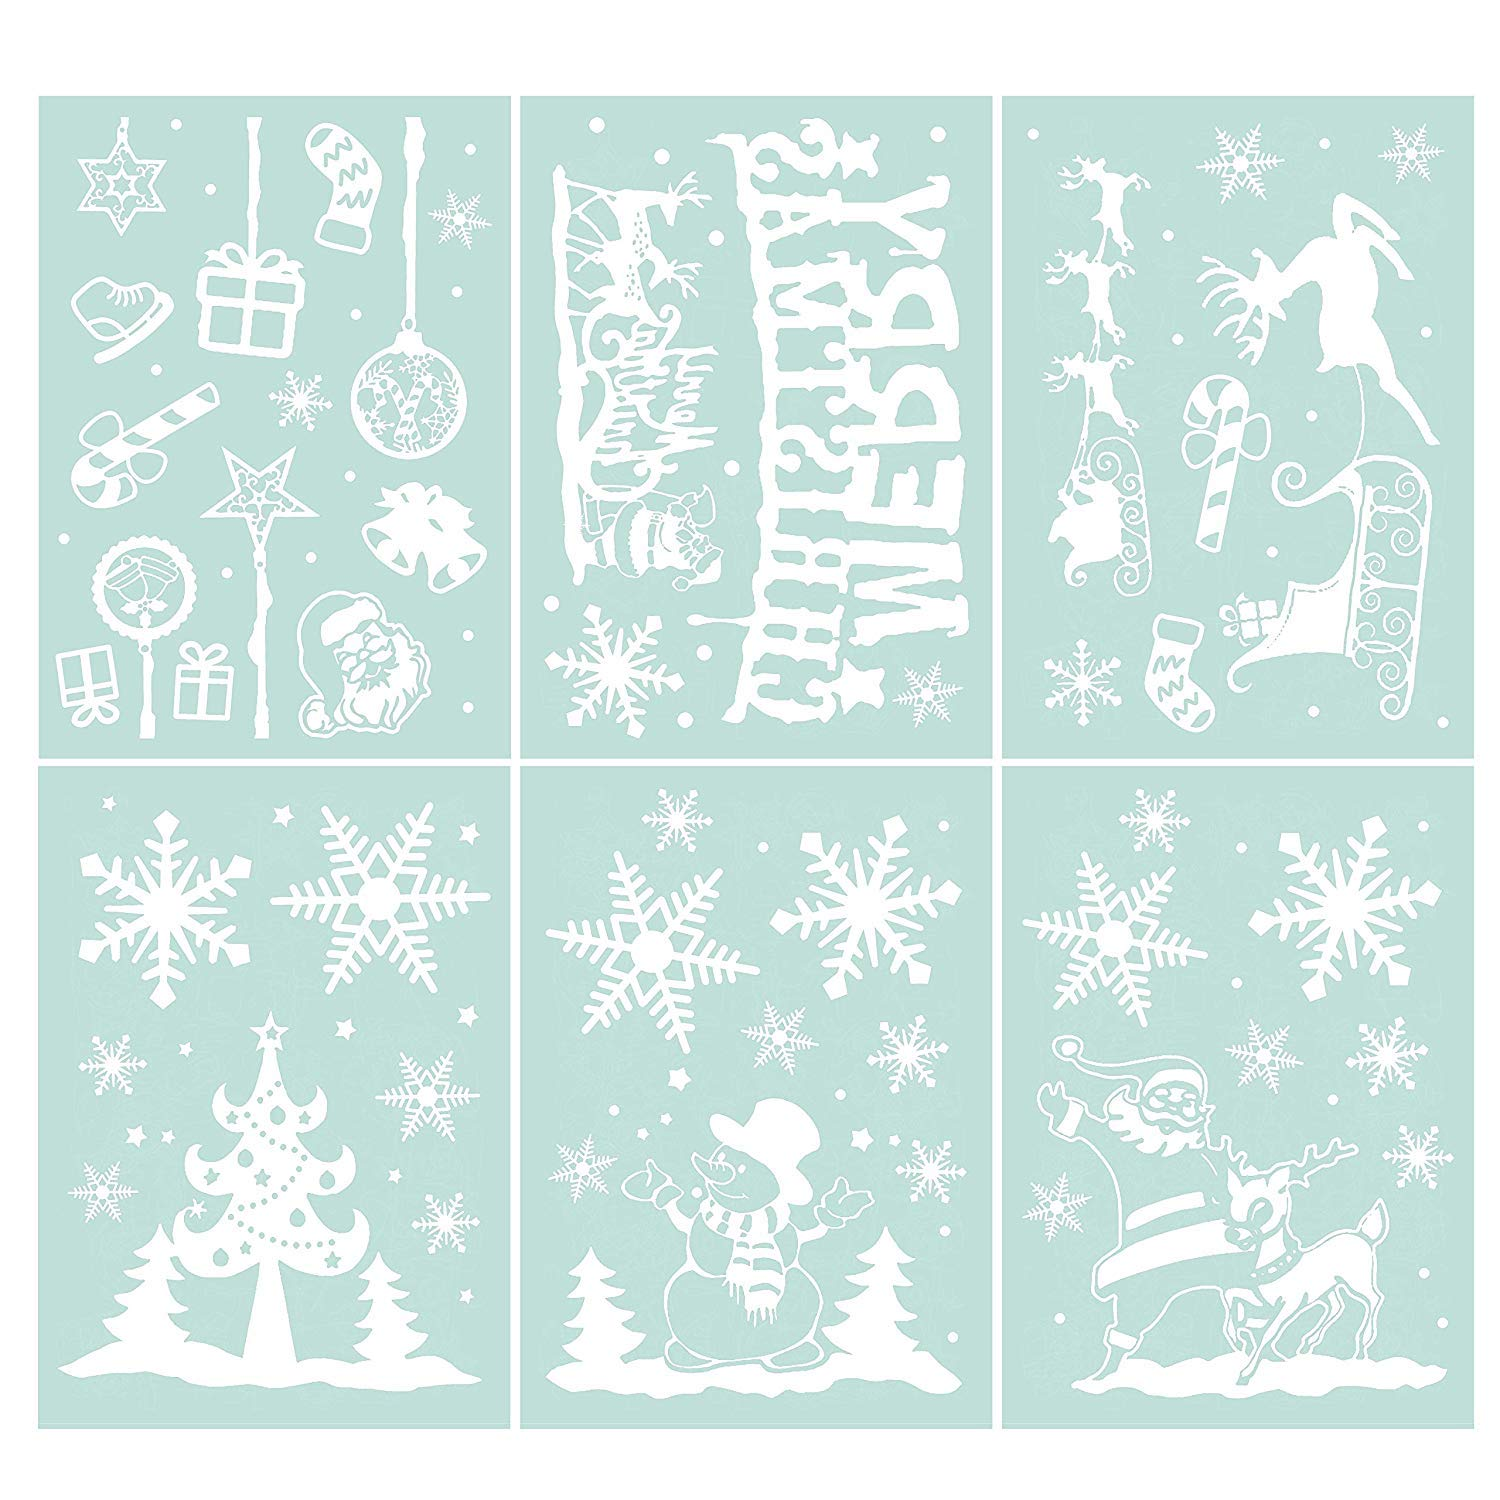 LOKIPA 48pcsChristmas White Window Display Clings Decal Stickers for Winter Wonderland Decorations (6Sheets)